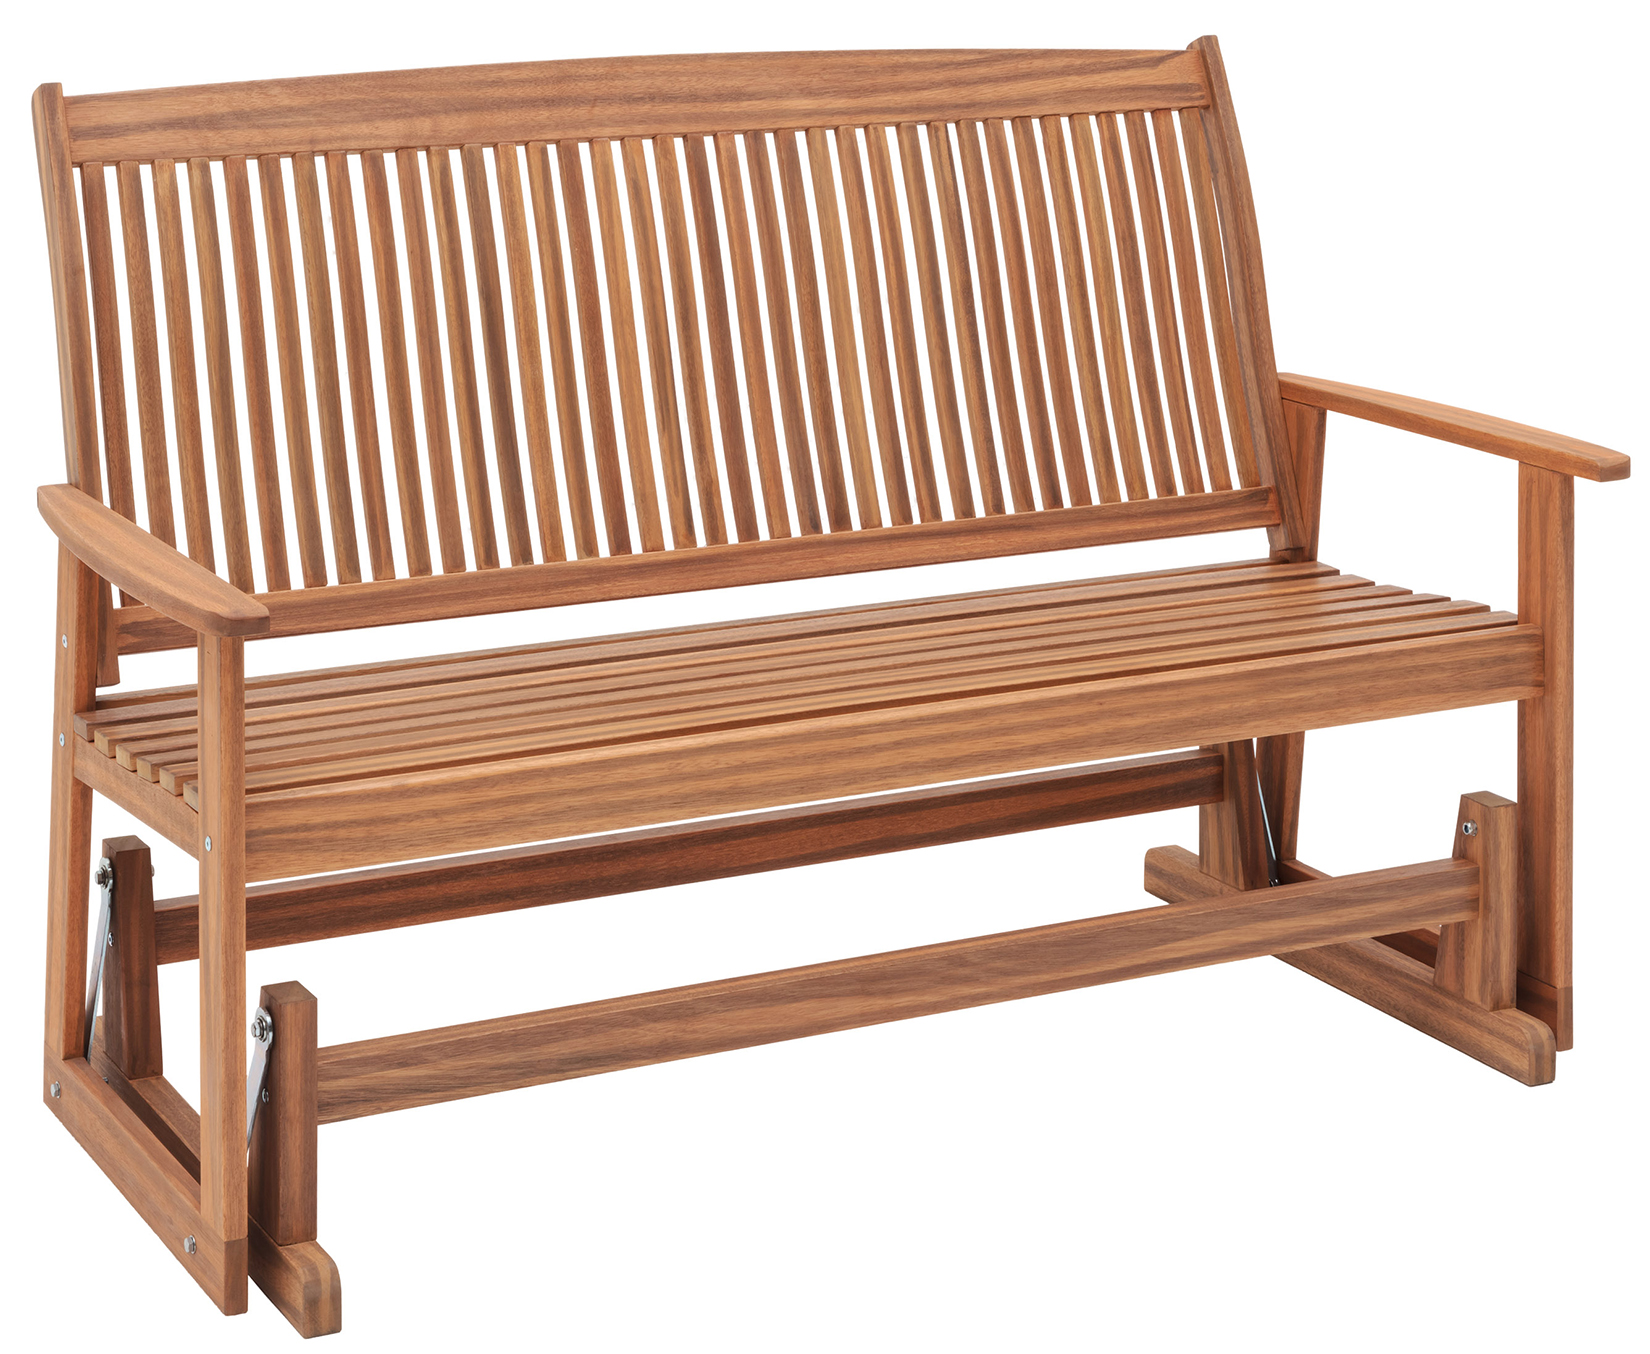 Jack Post 5' Gliding Bench in Teak Look by JACK POST CORP IMPORT